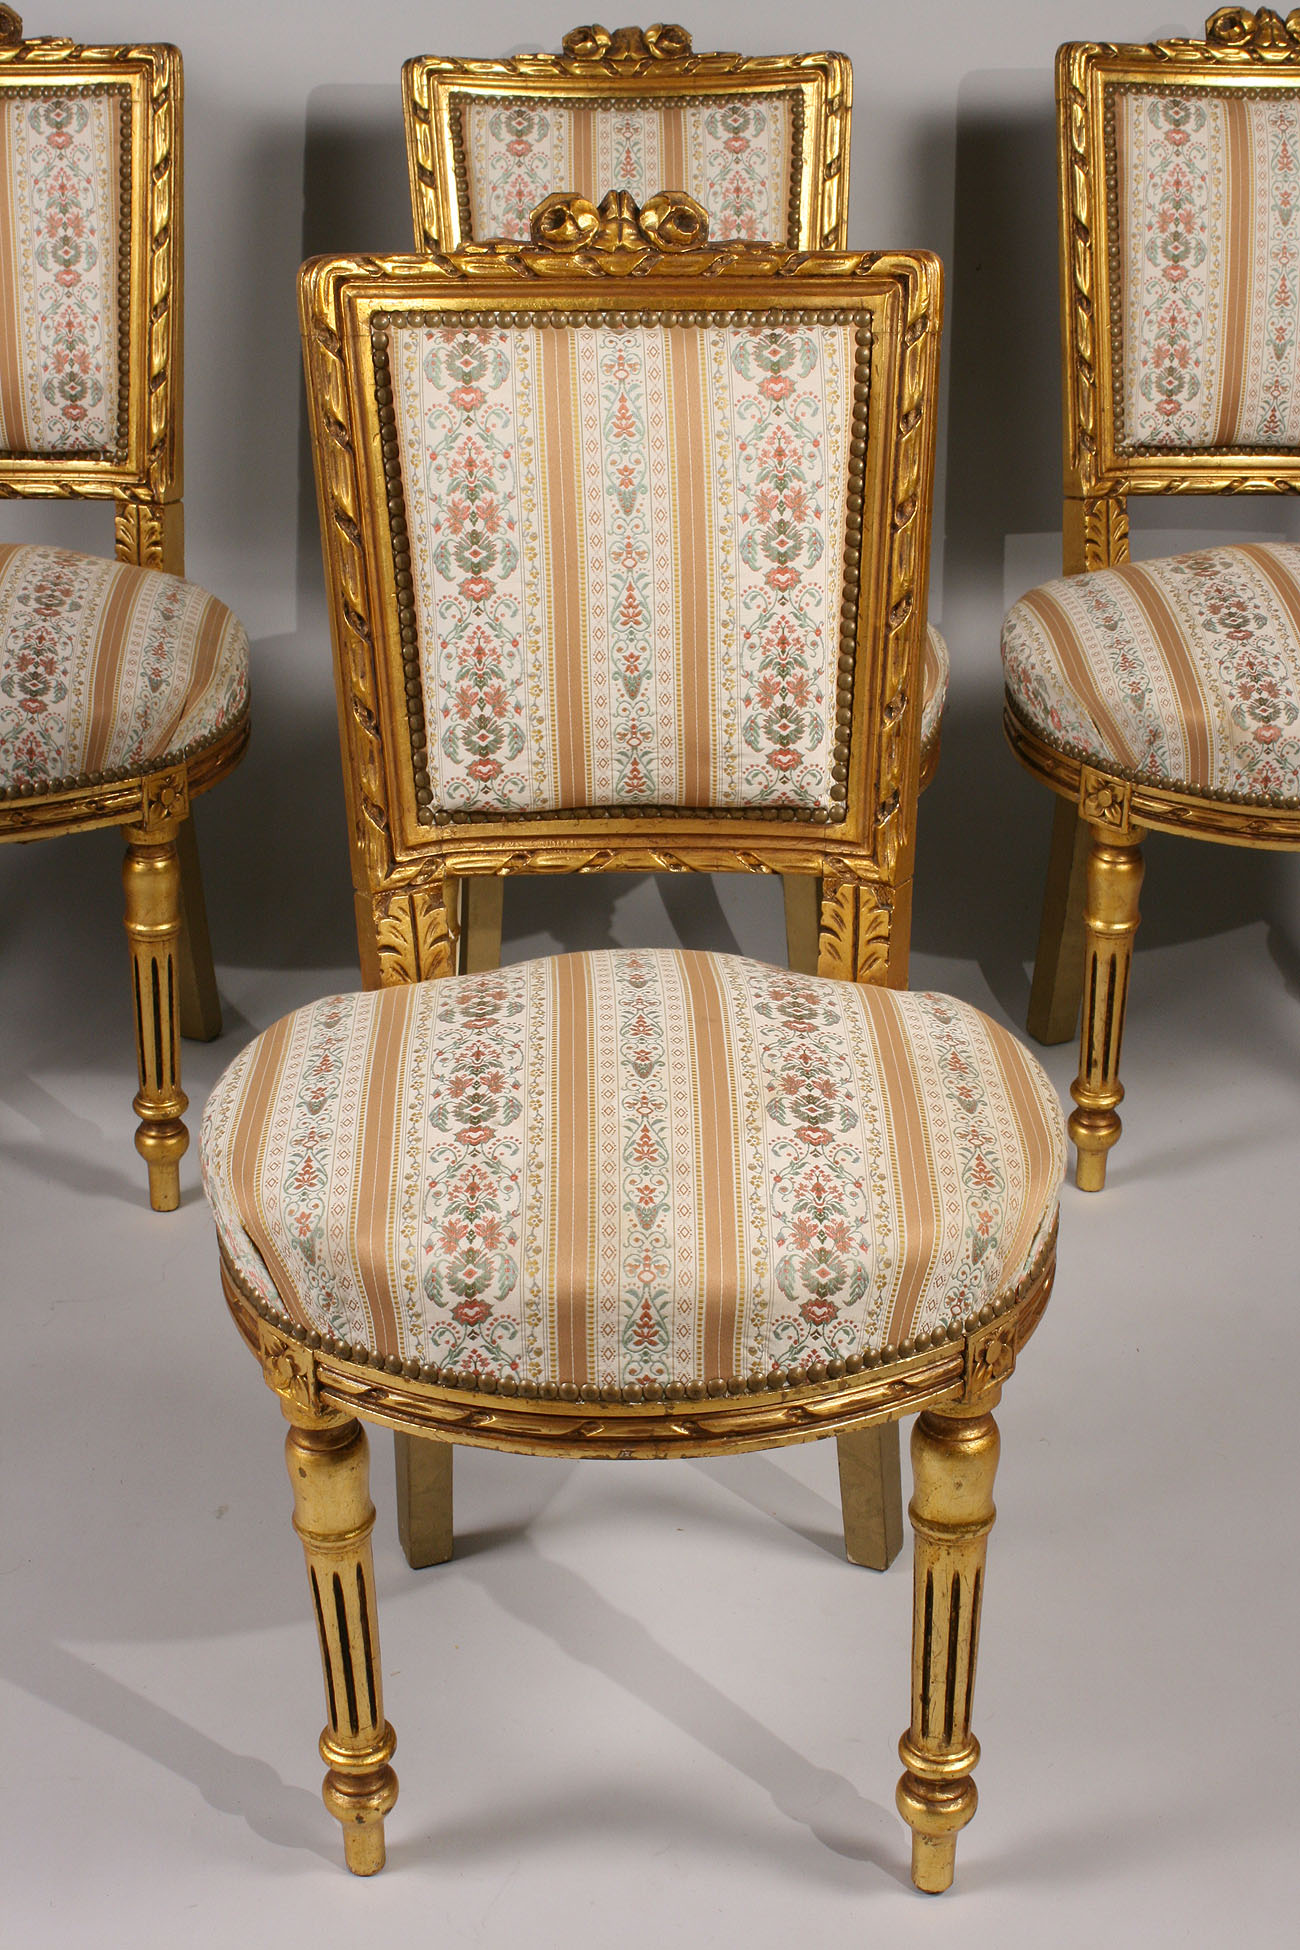 Lot 445 Louis XVI style Giltwood Chairs 4 & Table